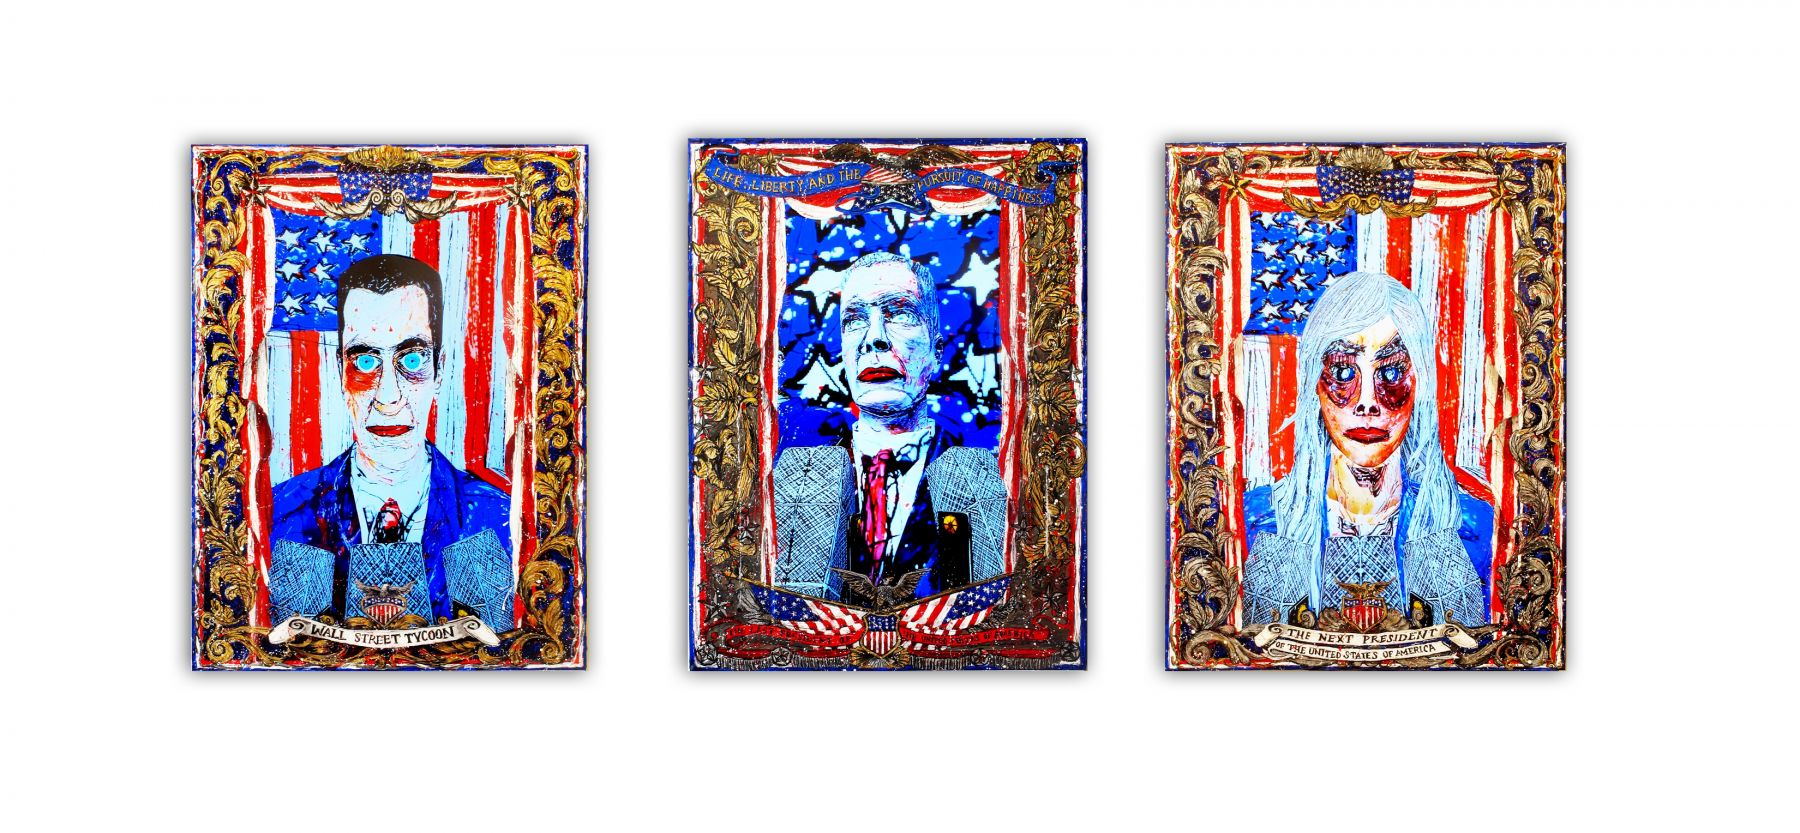 Federico Solmi_American Circus (Installation view) 2014, 3 video paintings, acrylic paint on plexiglass, gold and silver leaf, video loop, time varies, 18 x 24 inches (each)